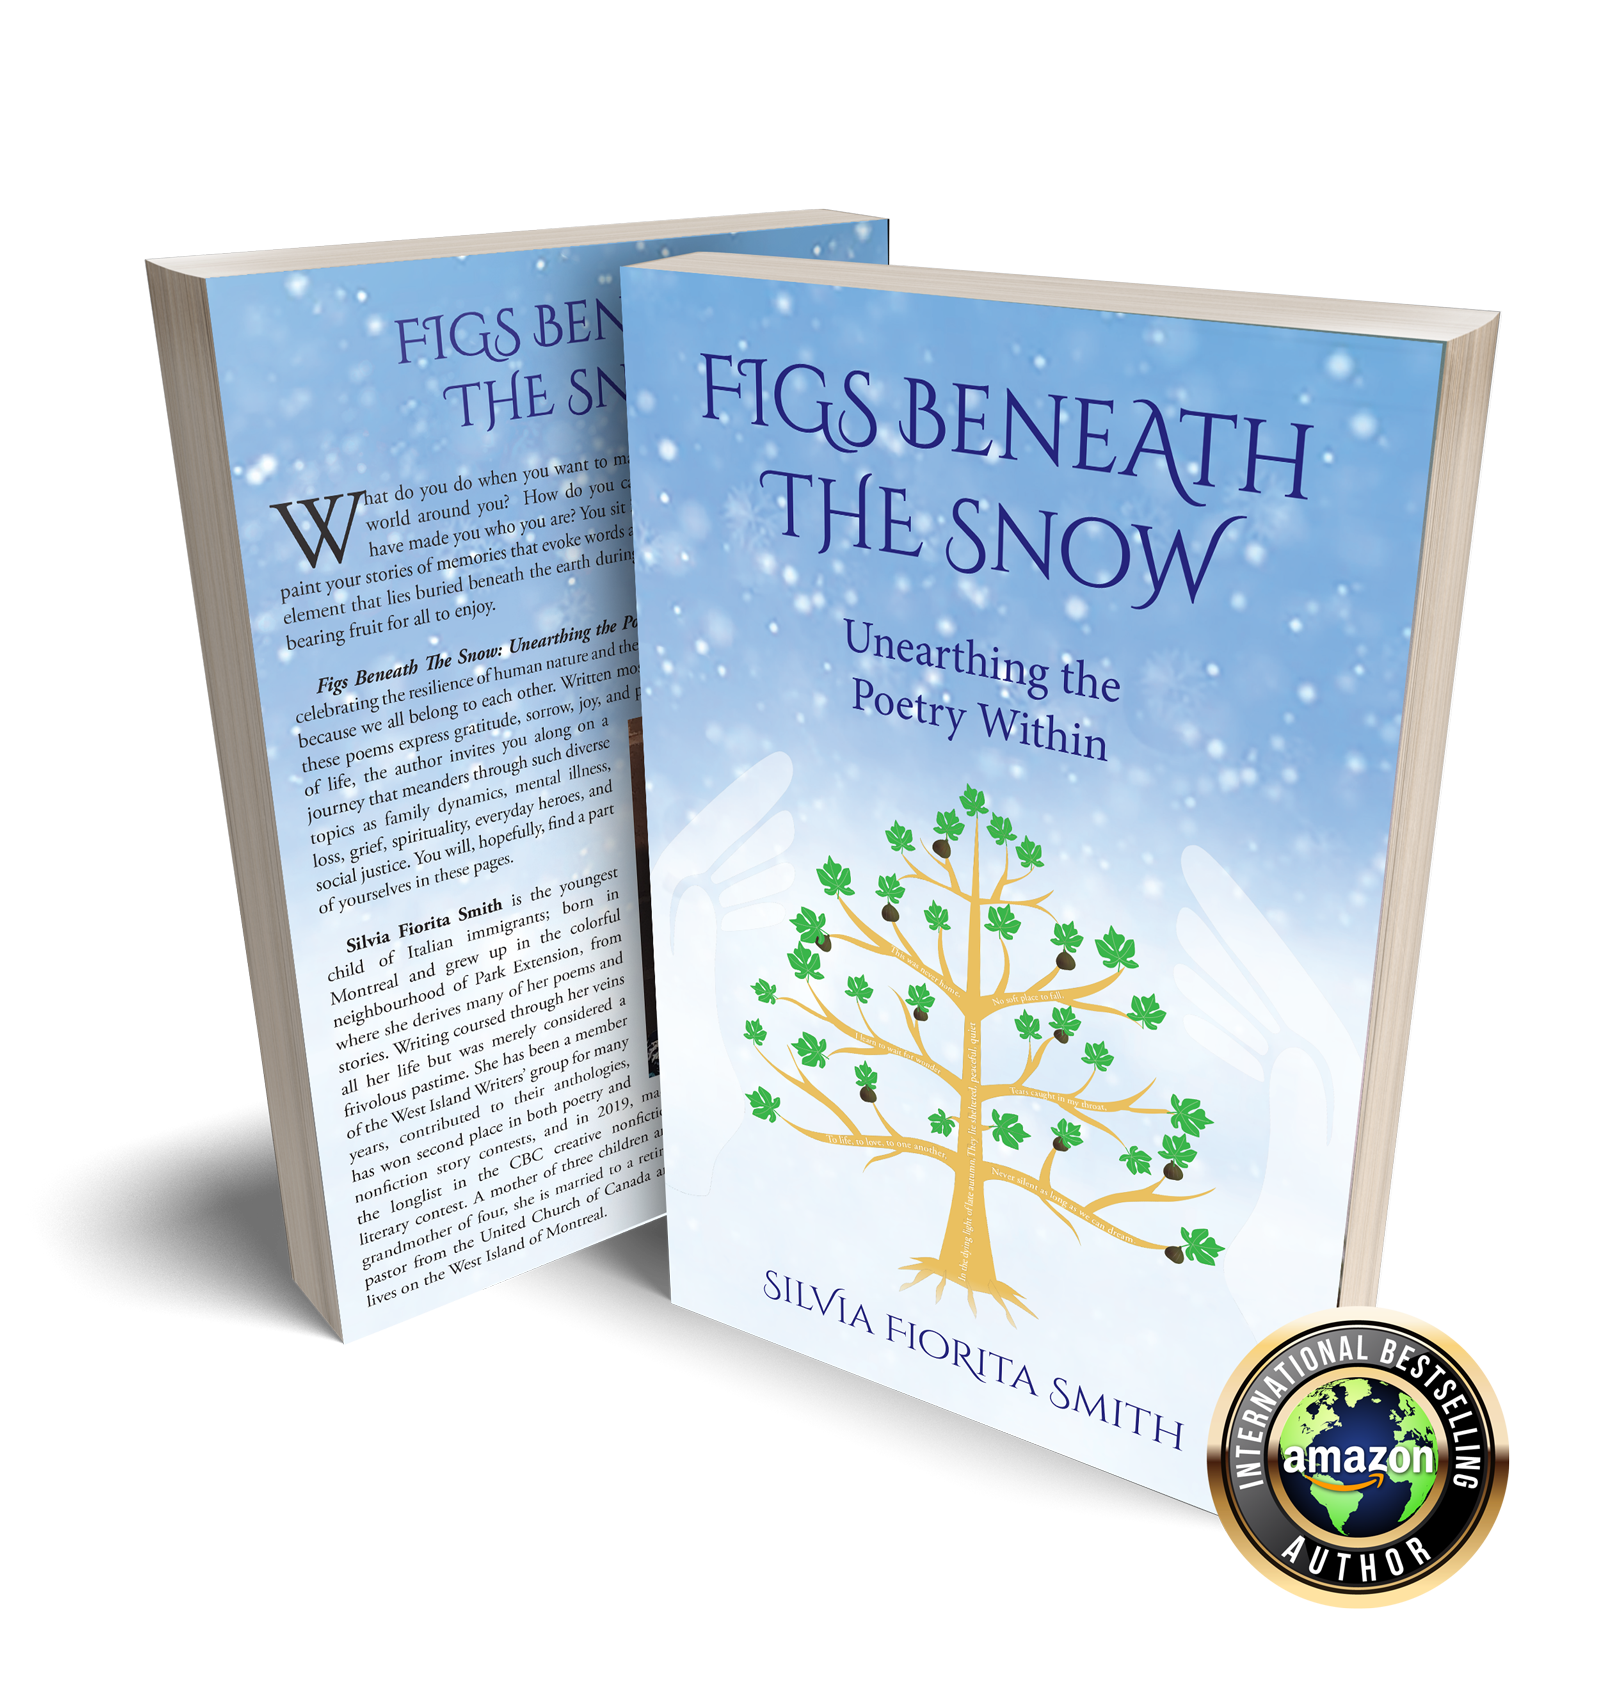 Figs Beneath the Snow - Best Selling